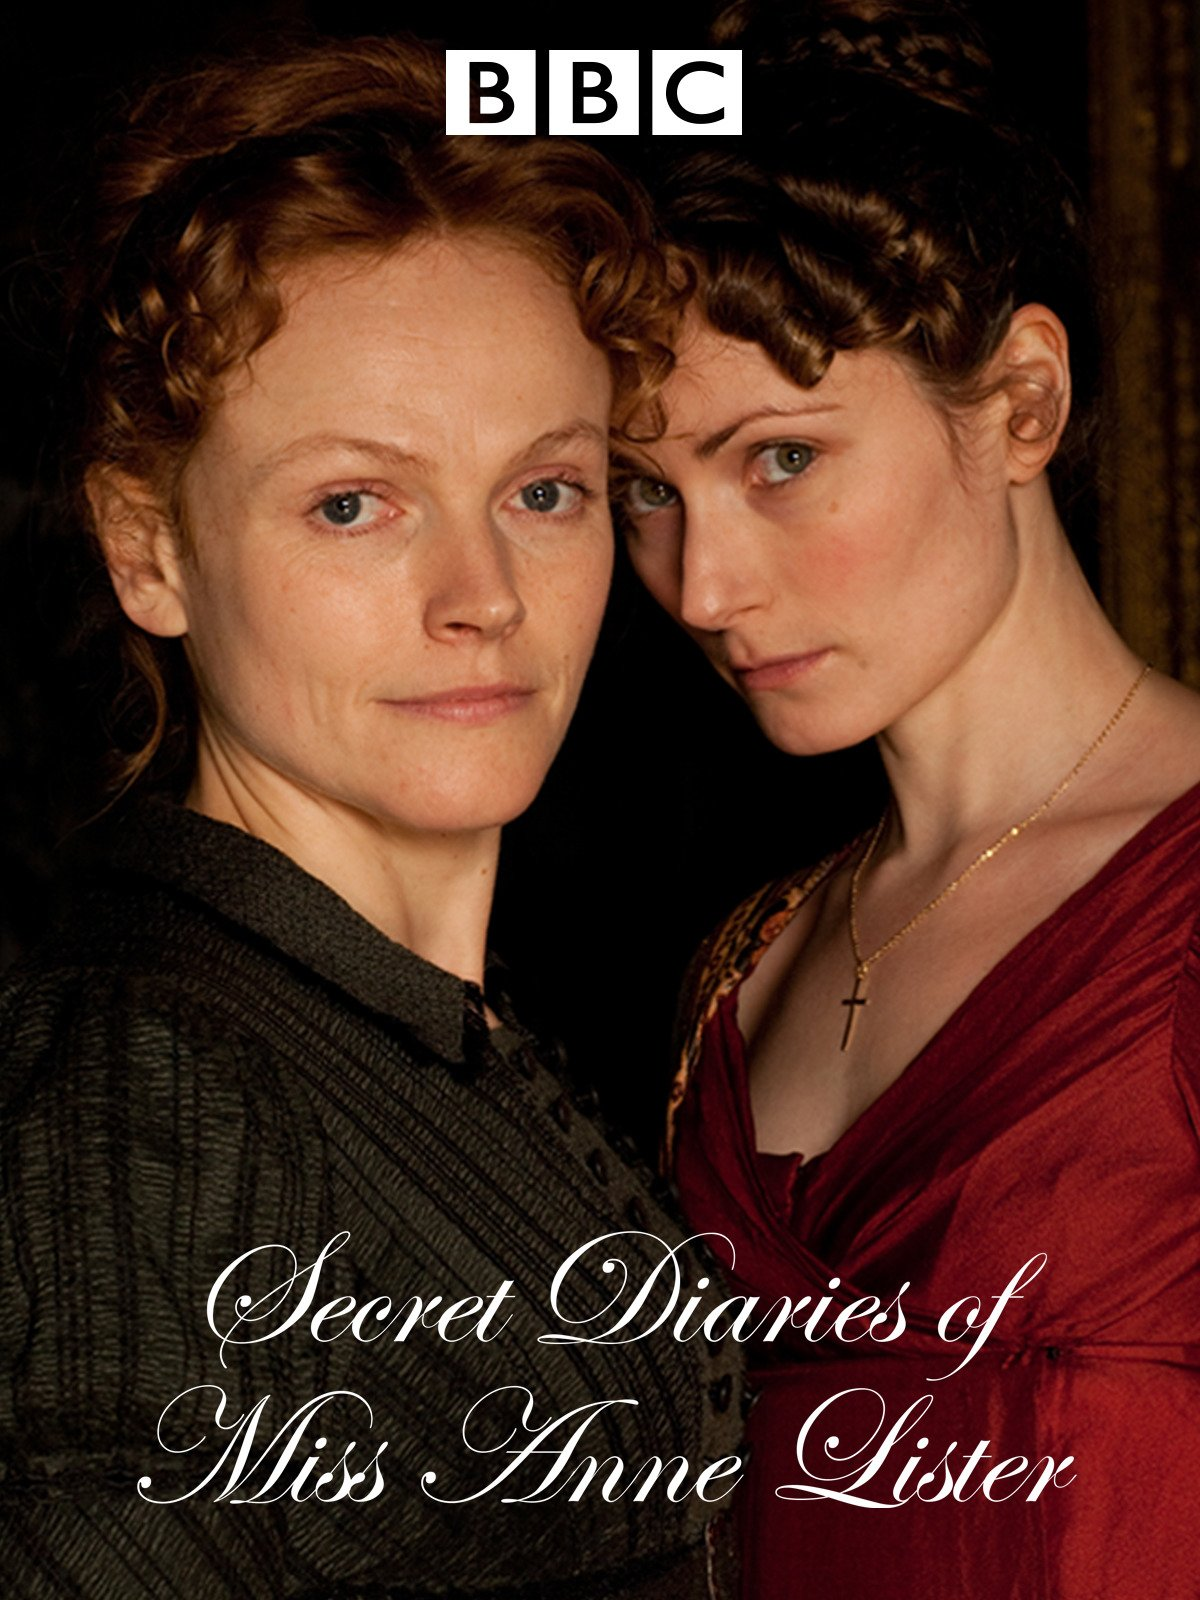 Amazon com: Watch The Secret Diaries of Miss Anne Lister